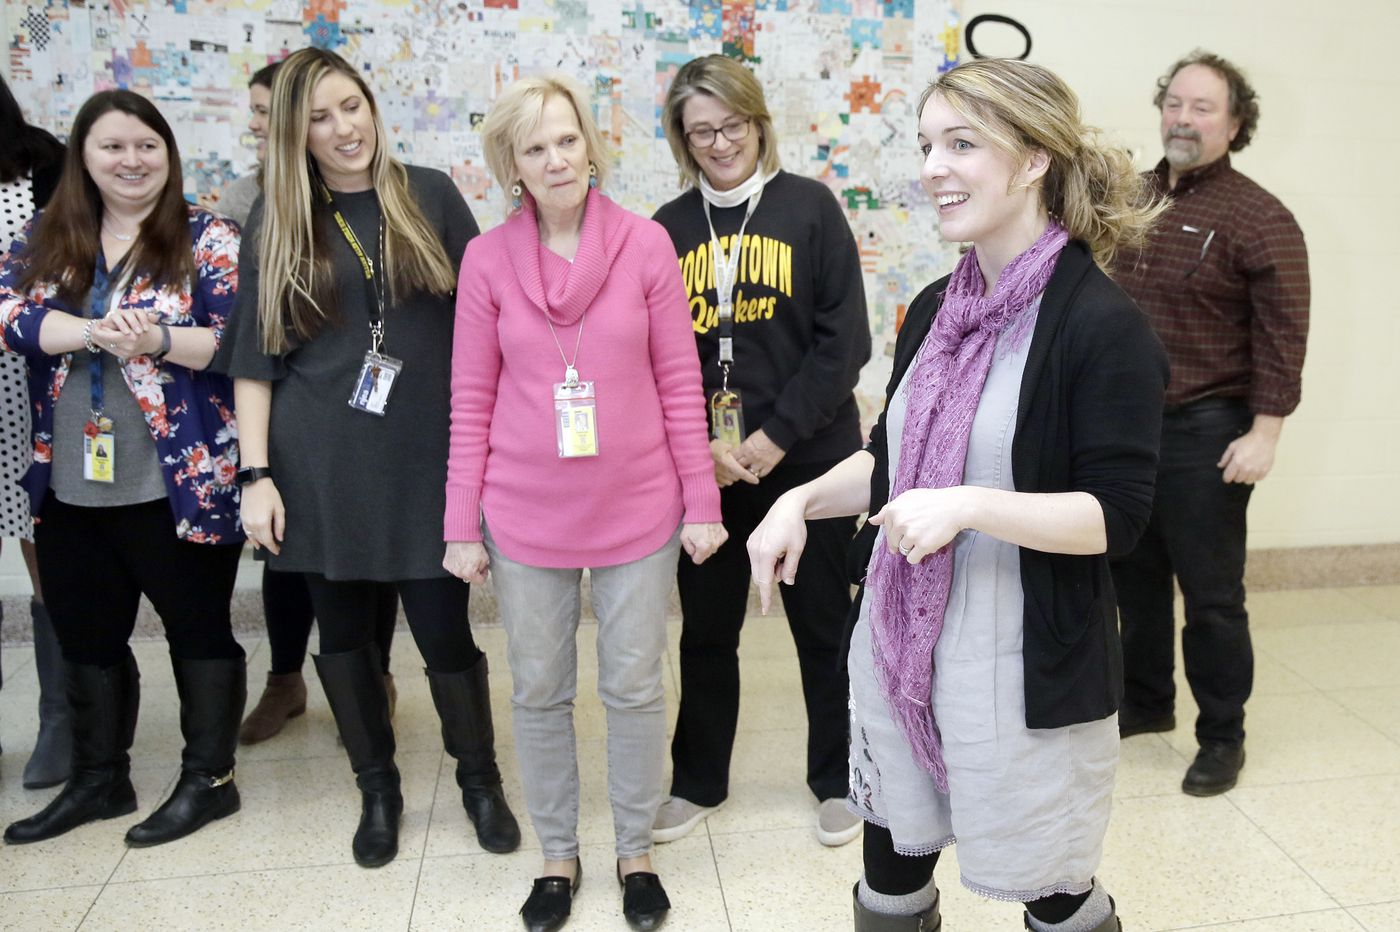 One outfit, 100 days: South Jersey art teacher completes 'eco mission' to educate students